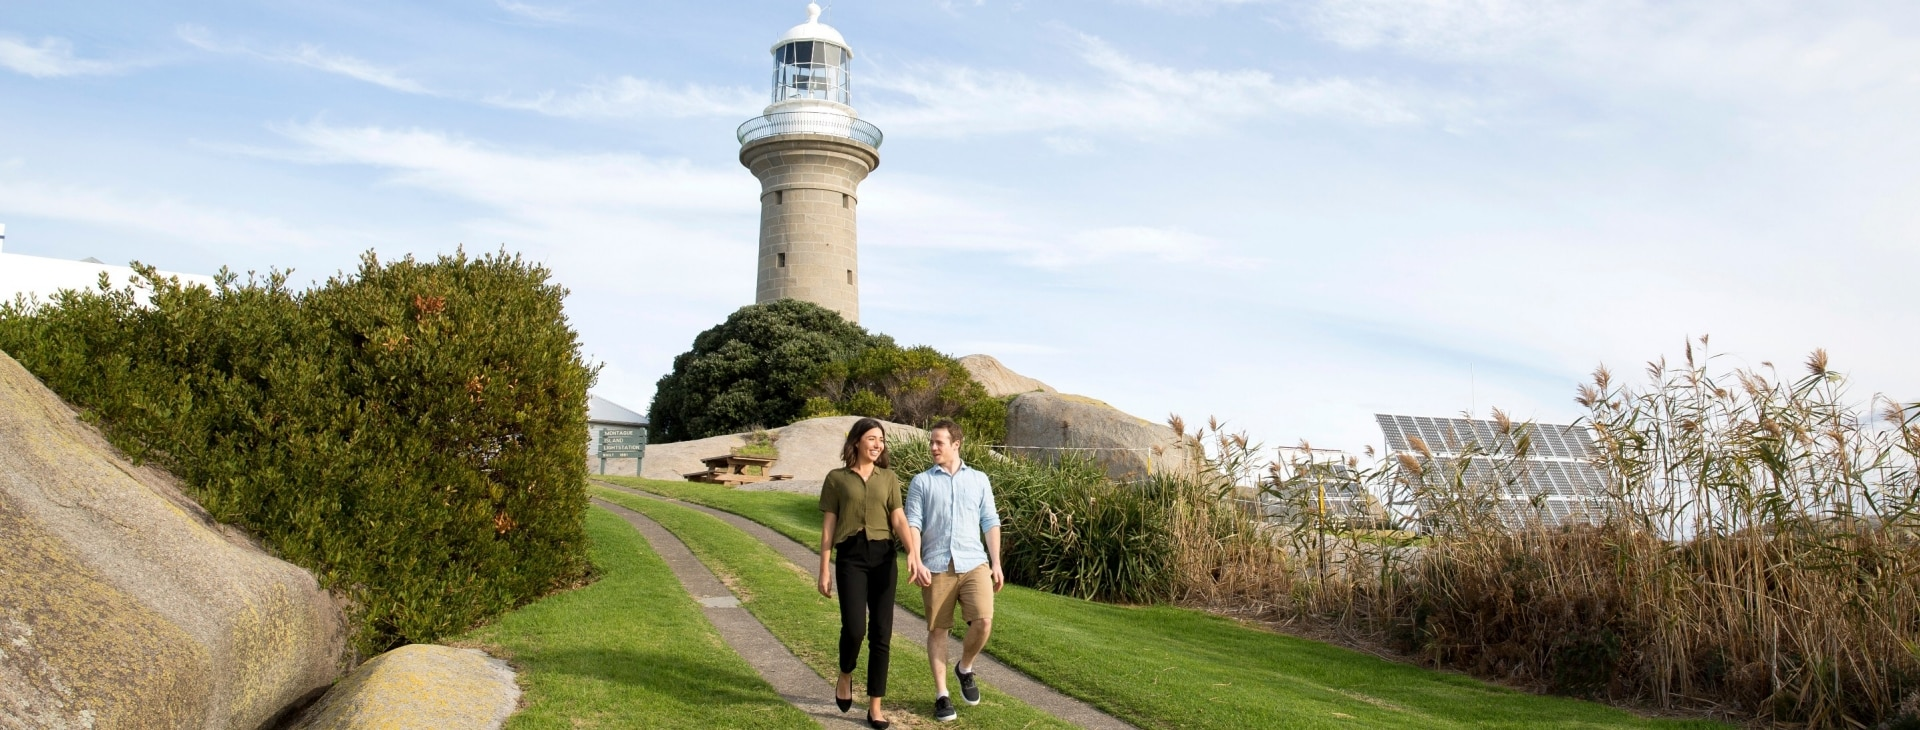 Couple enjoying a visit to Montague Island lighthouse in Narooma © Destination NSW